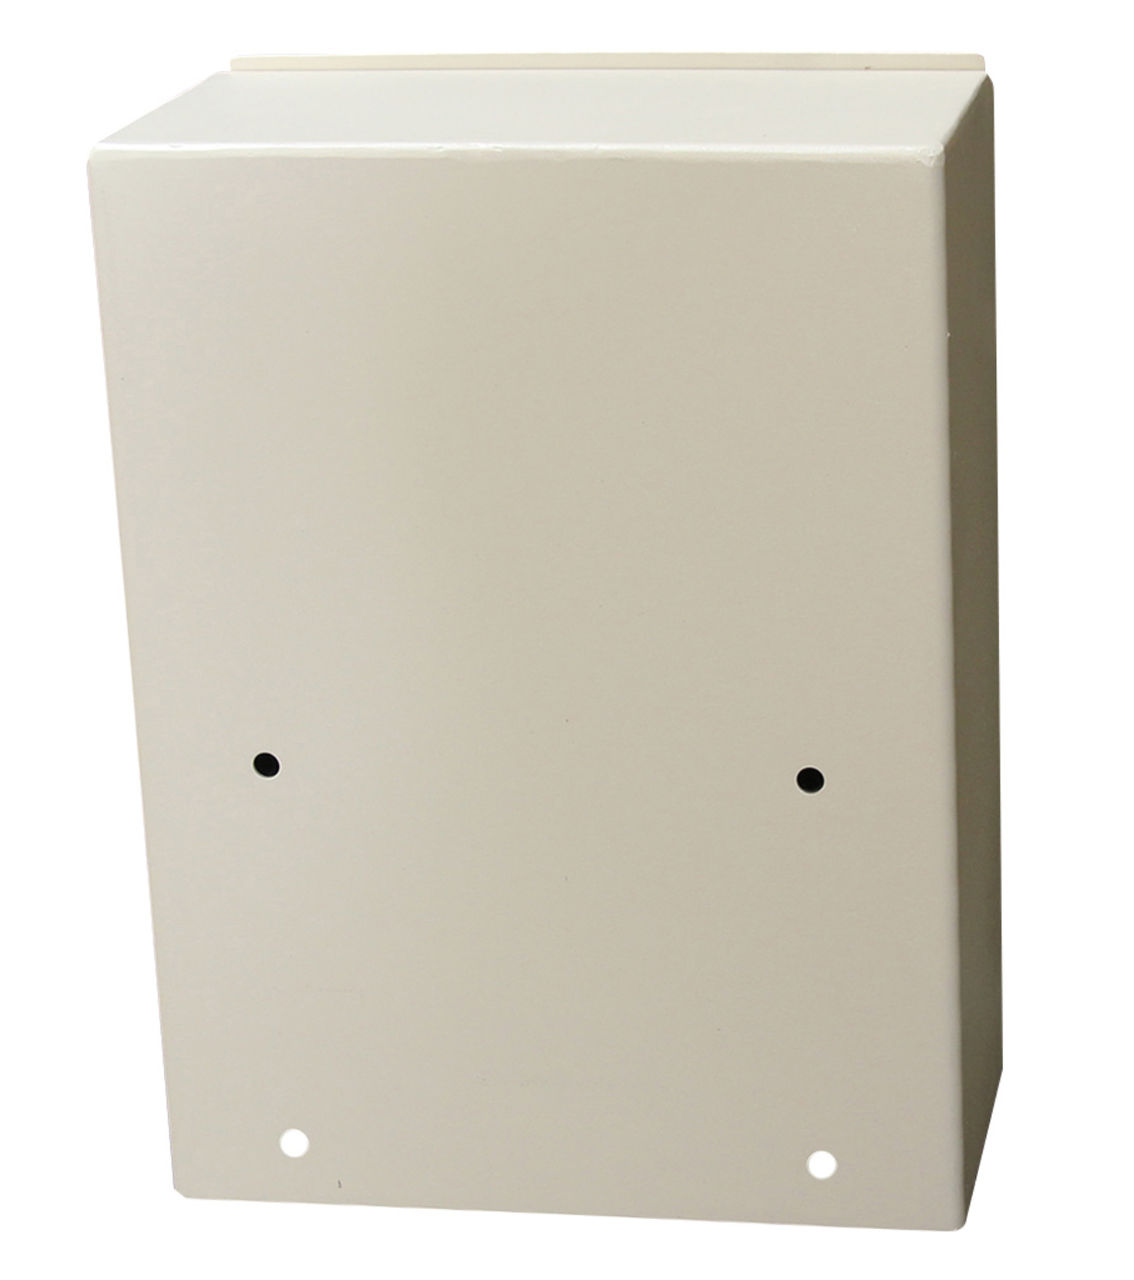 Large High Security Payment Drop Box Wall Mounted